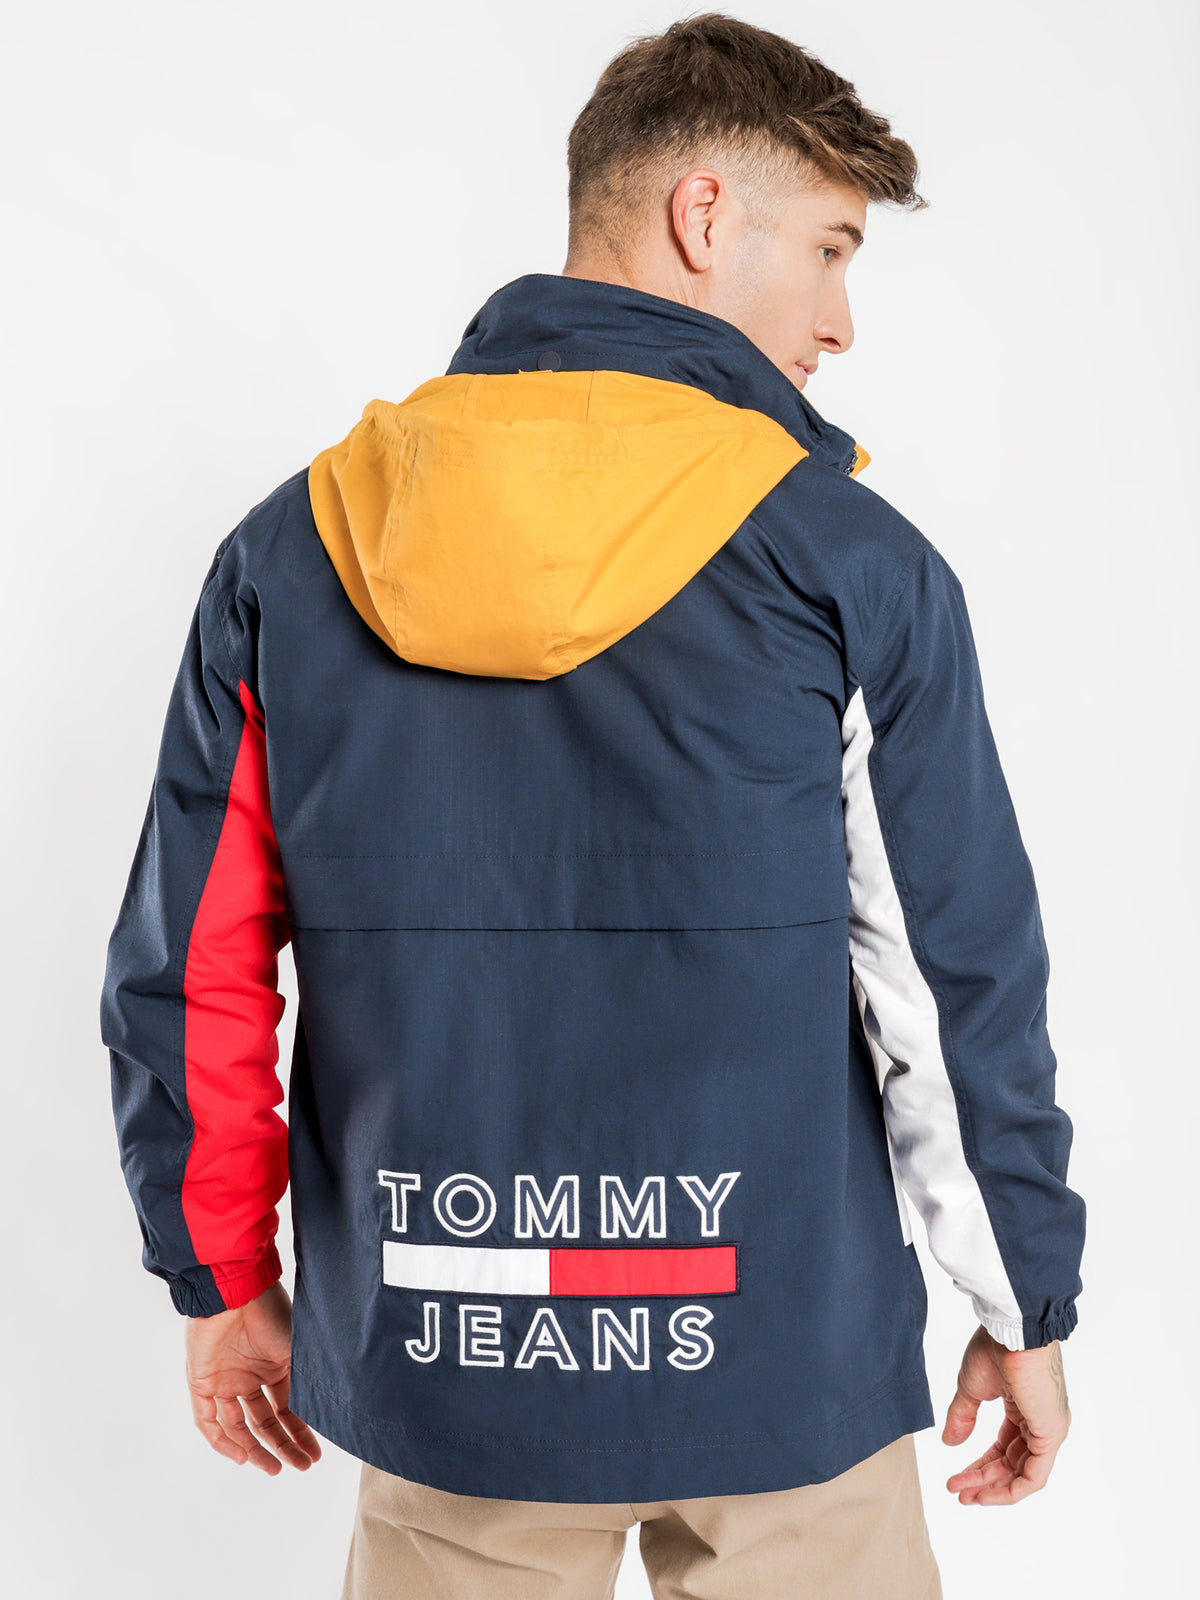 TJ US Reversible Hooded Jacket in Navy & Yellow